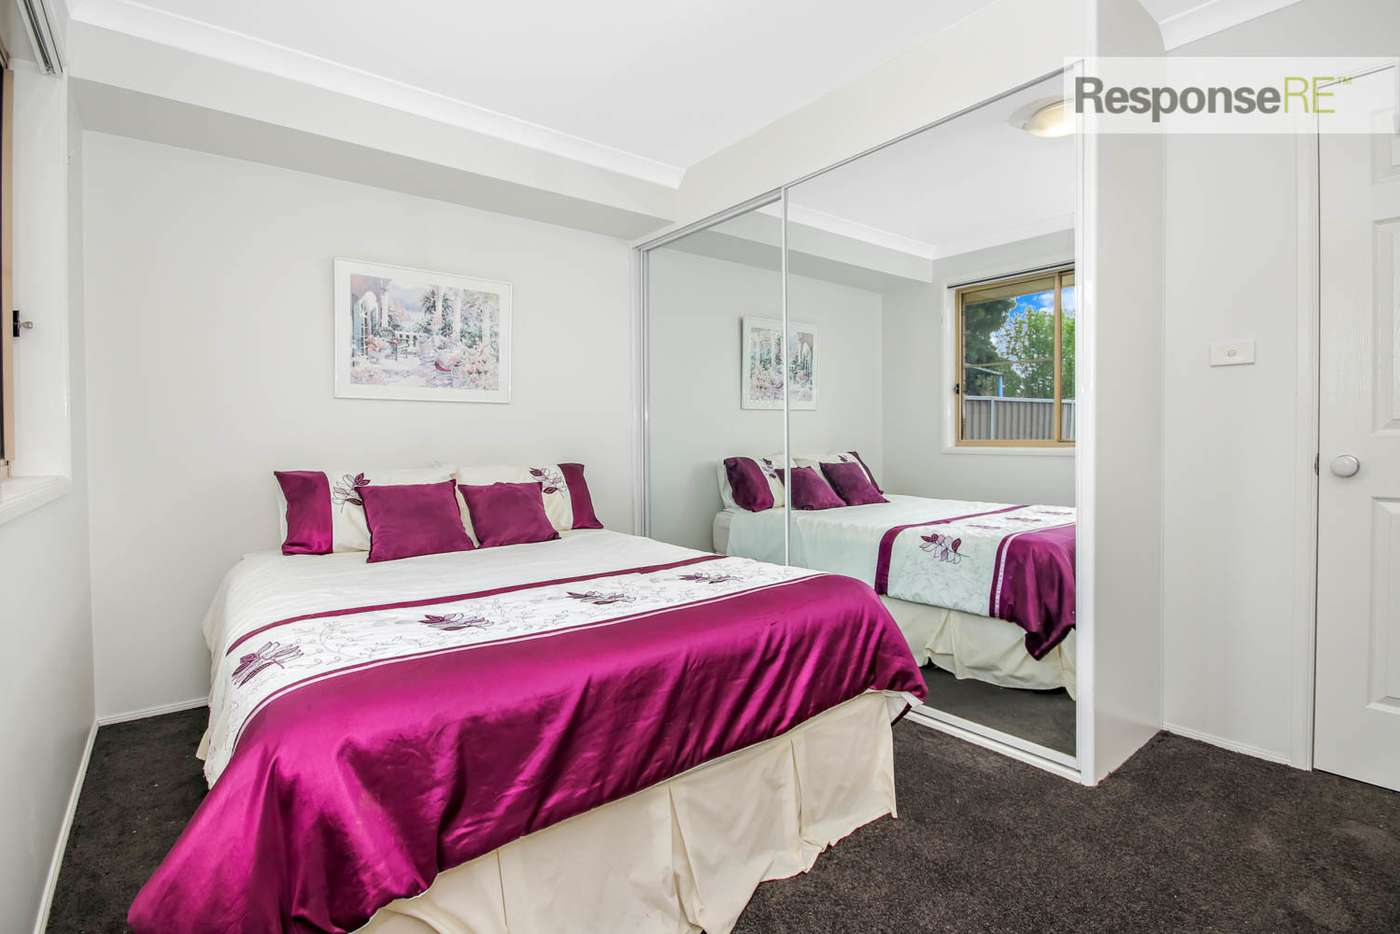 Sixth view of Homely house listing, 116 Woodriff Street, Penrith NSW 2750